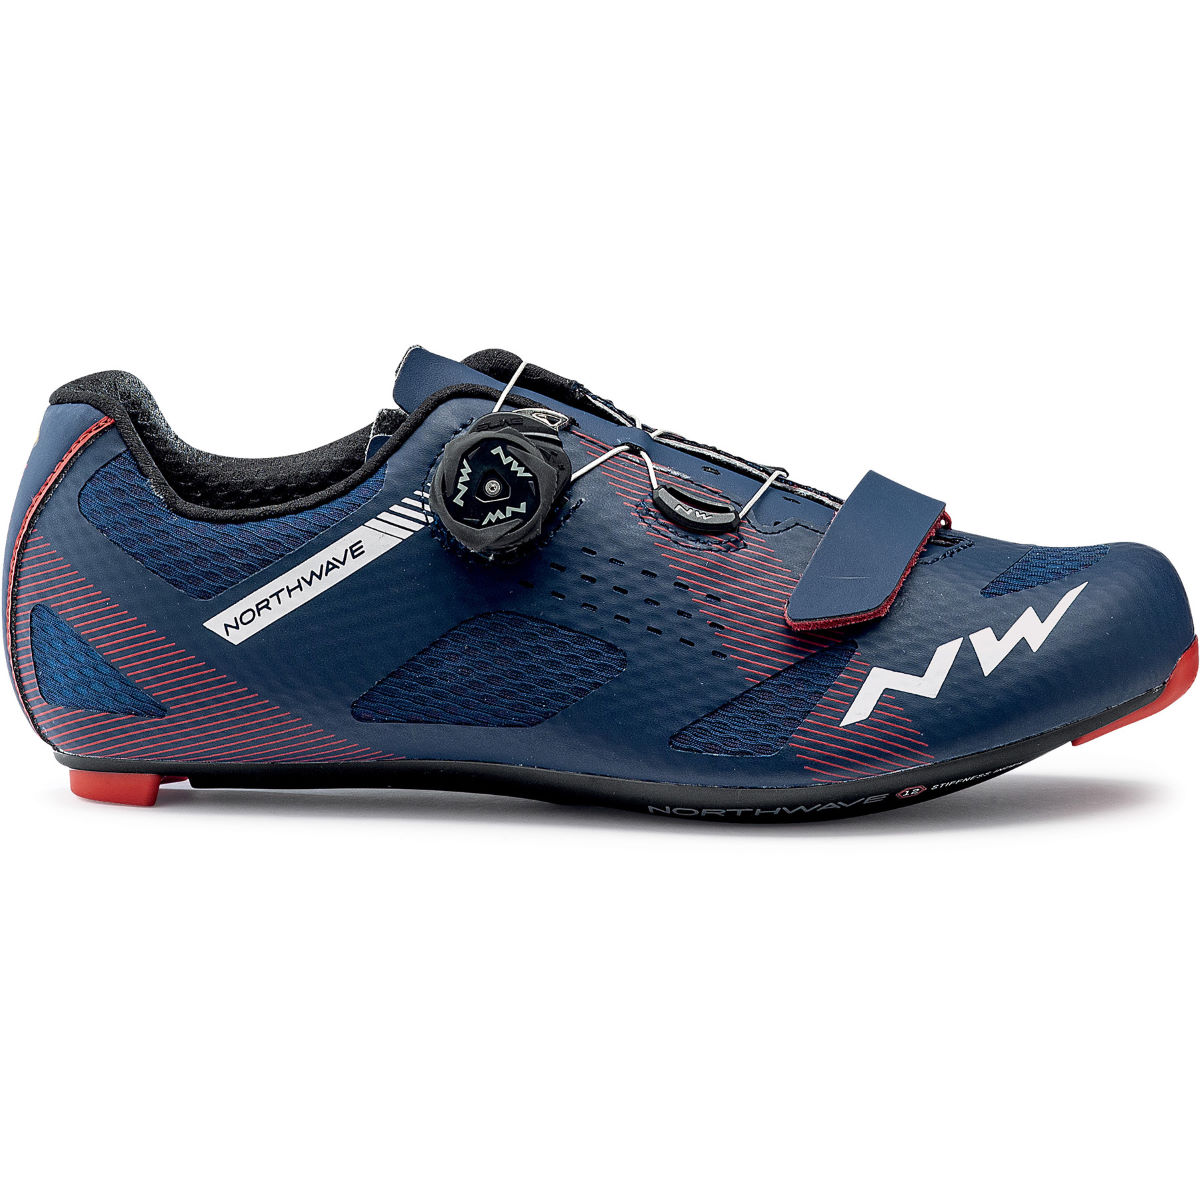 Northwave Northwave Storm Carbon Road Shoes   Cycling Shoes